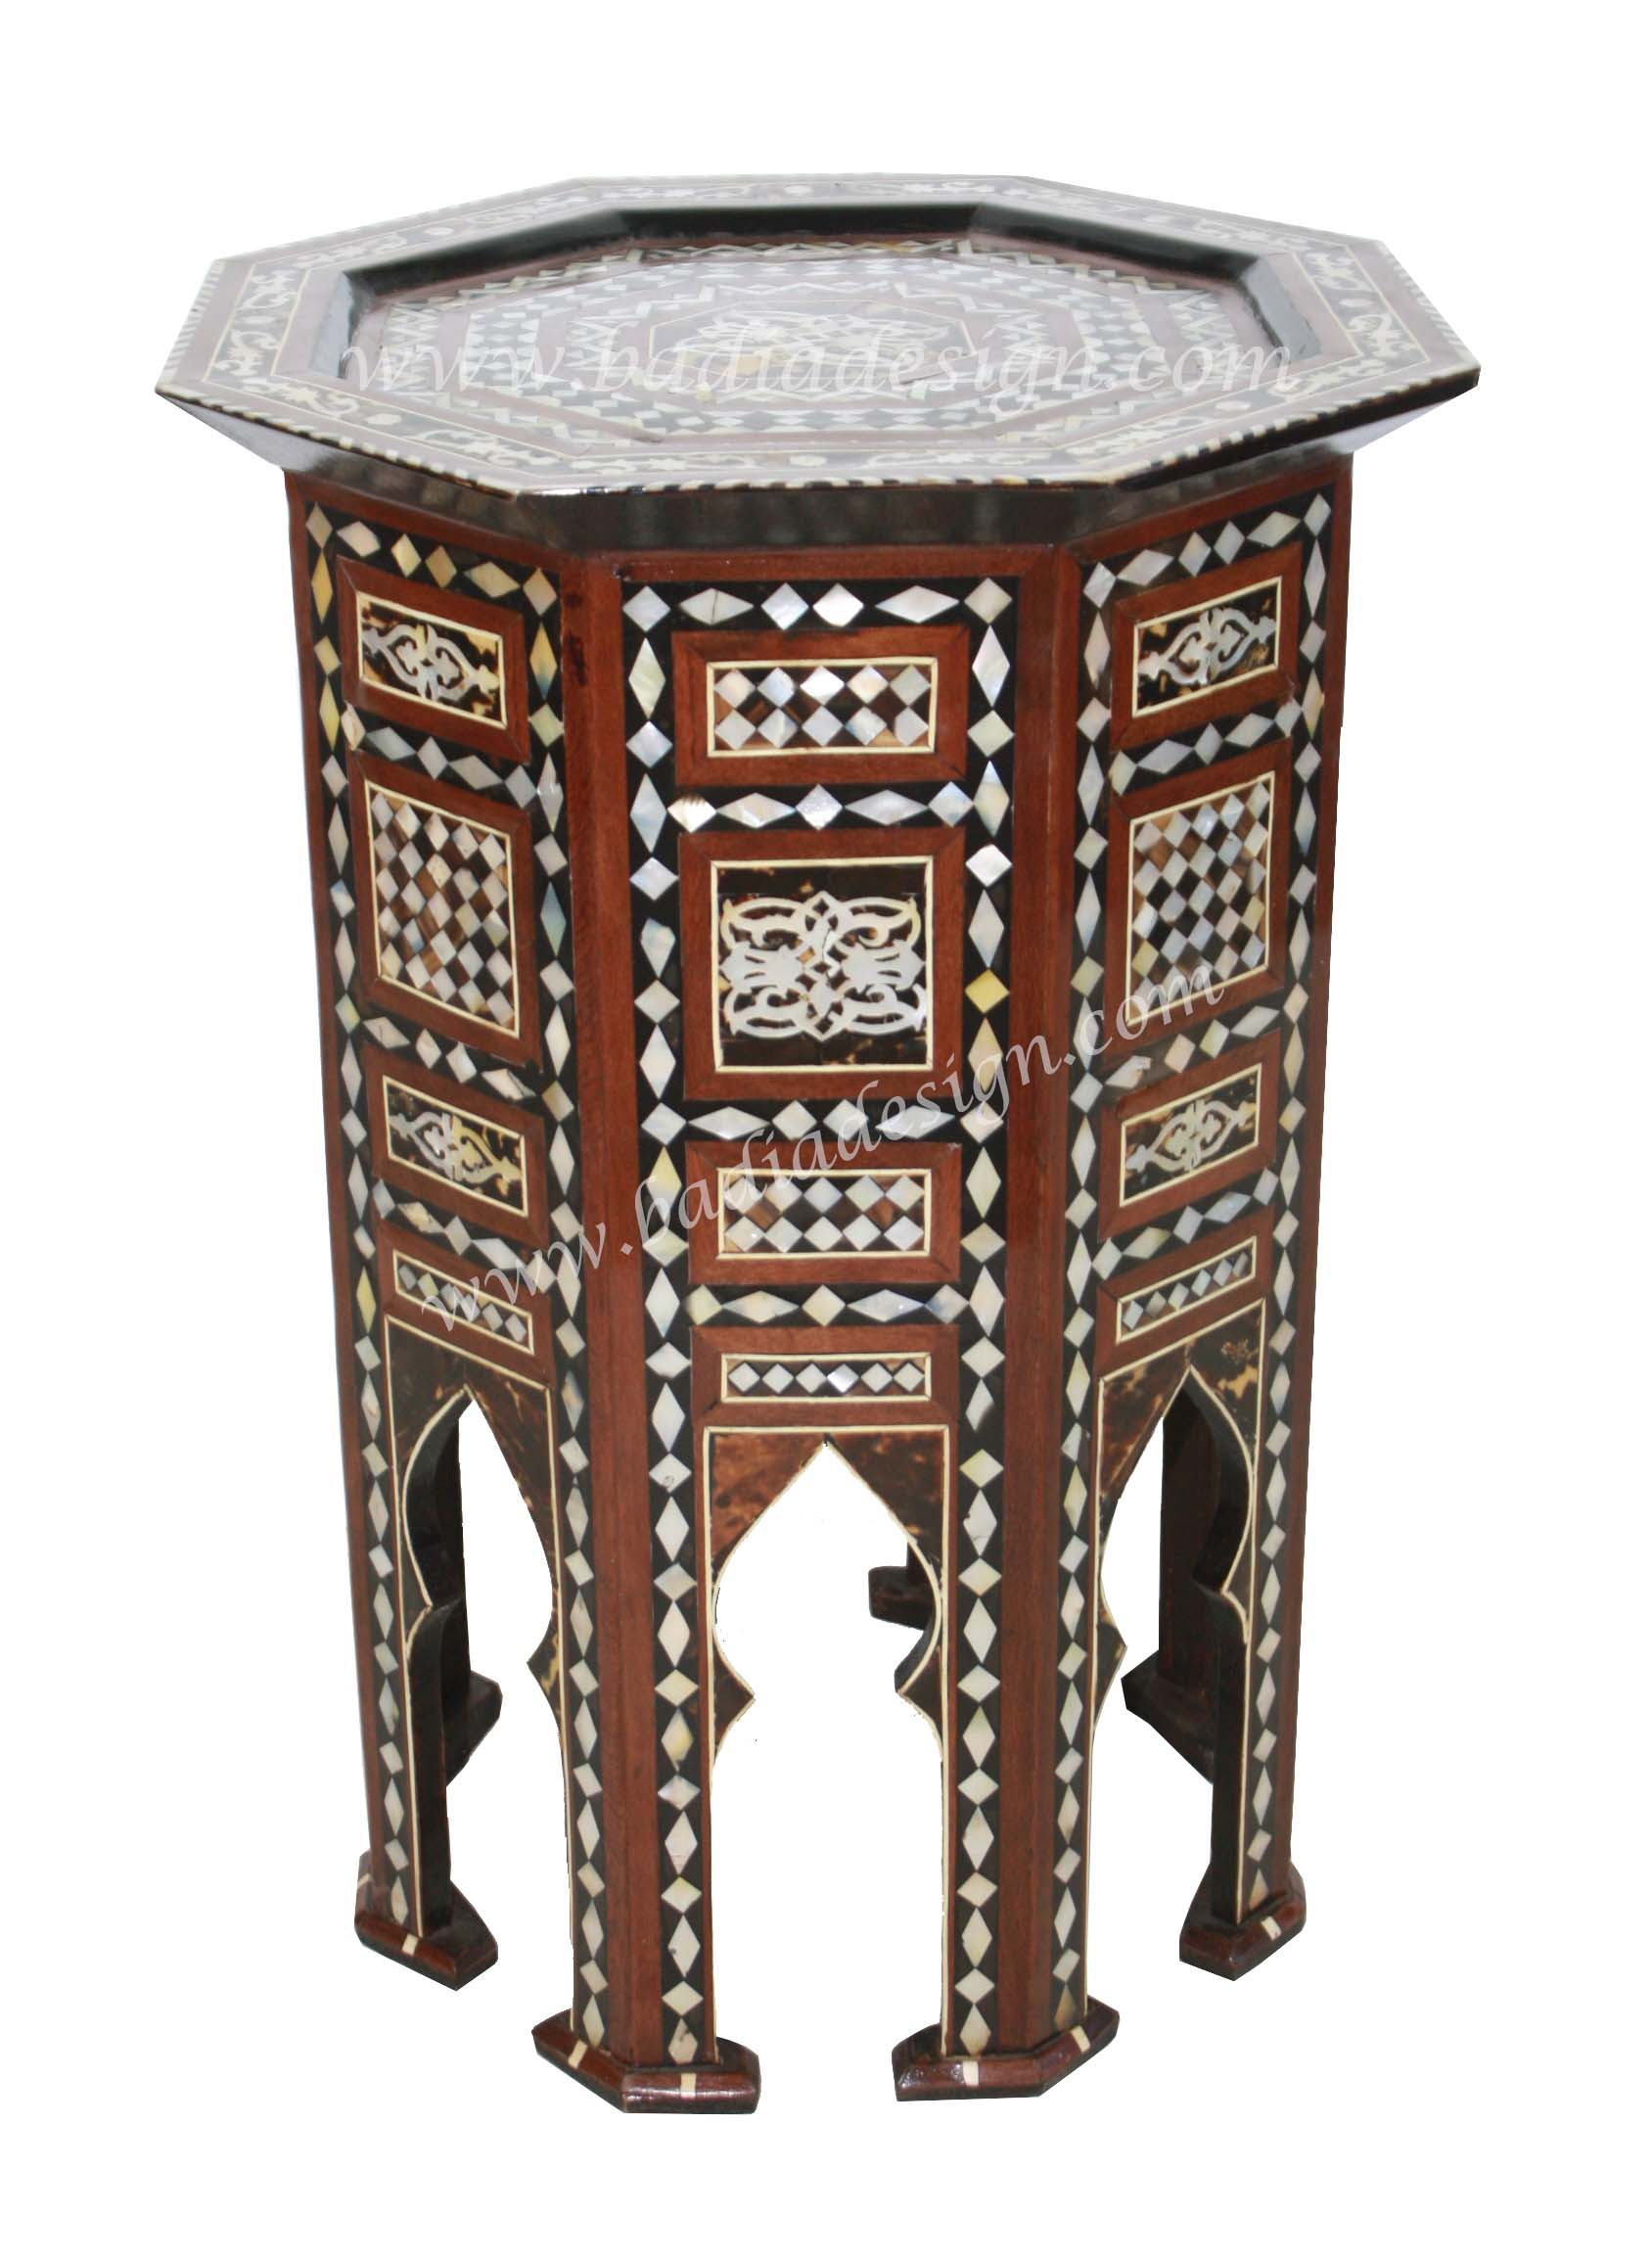 syrian-design-inlay-side-table-mop-st068-1.jpg